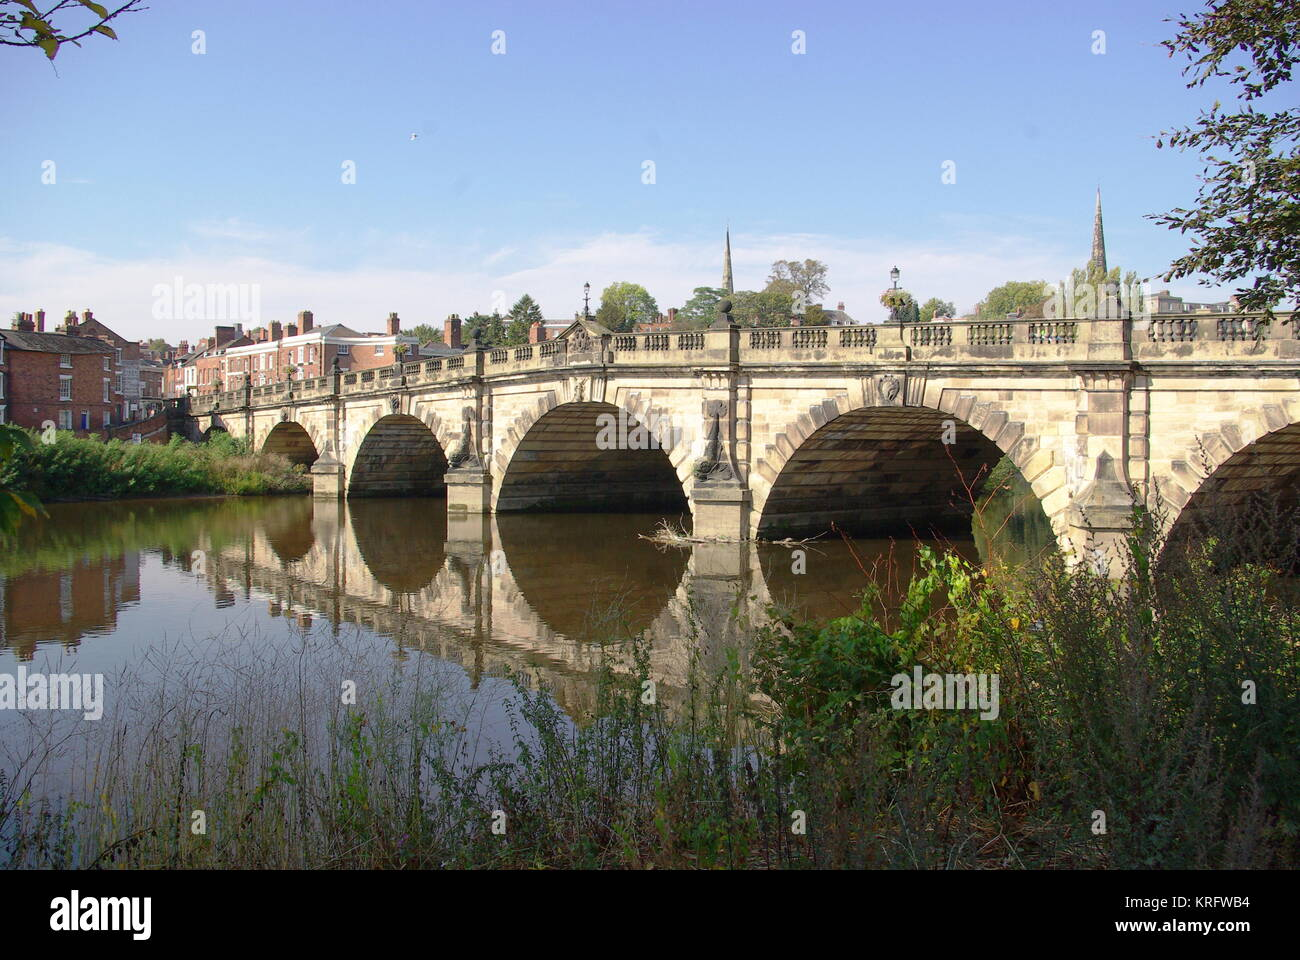 The English Bridge over the River Severn at Shrewsbury, Shropshire.     Date: 2011 - Stock Image